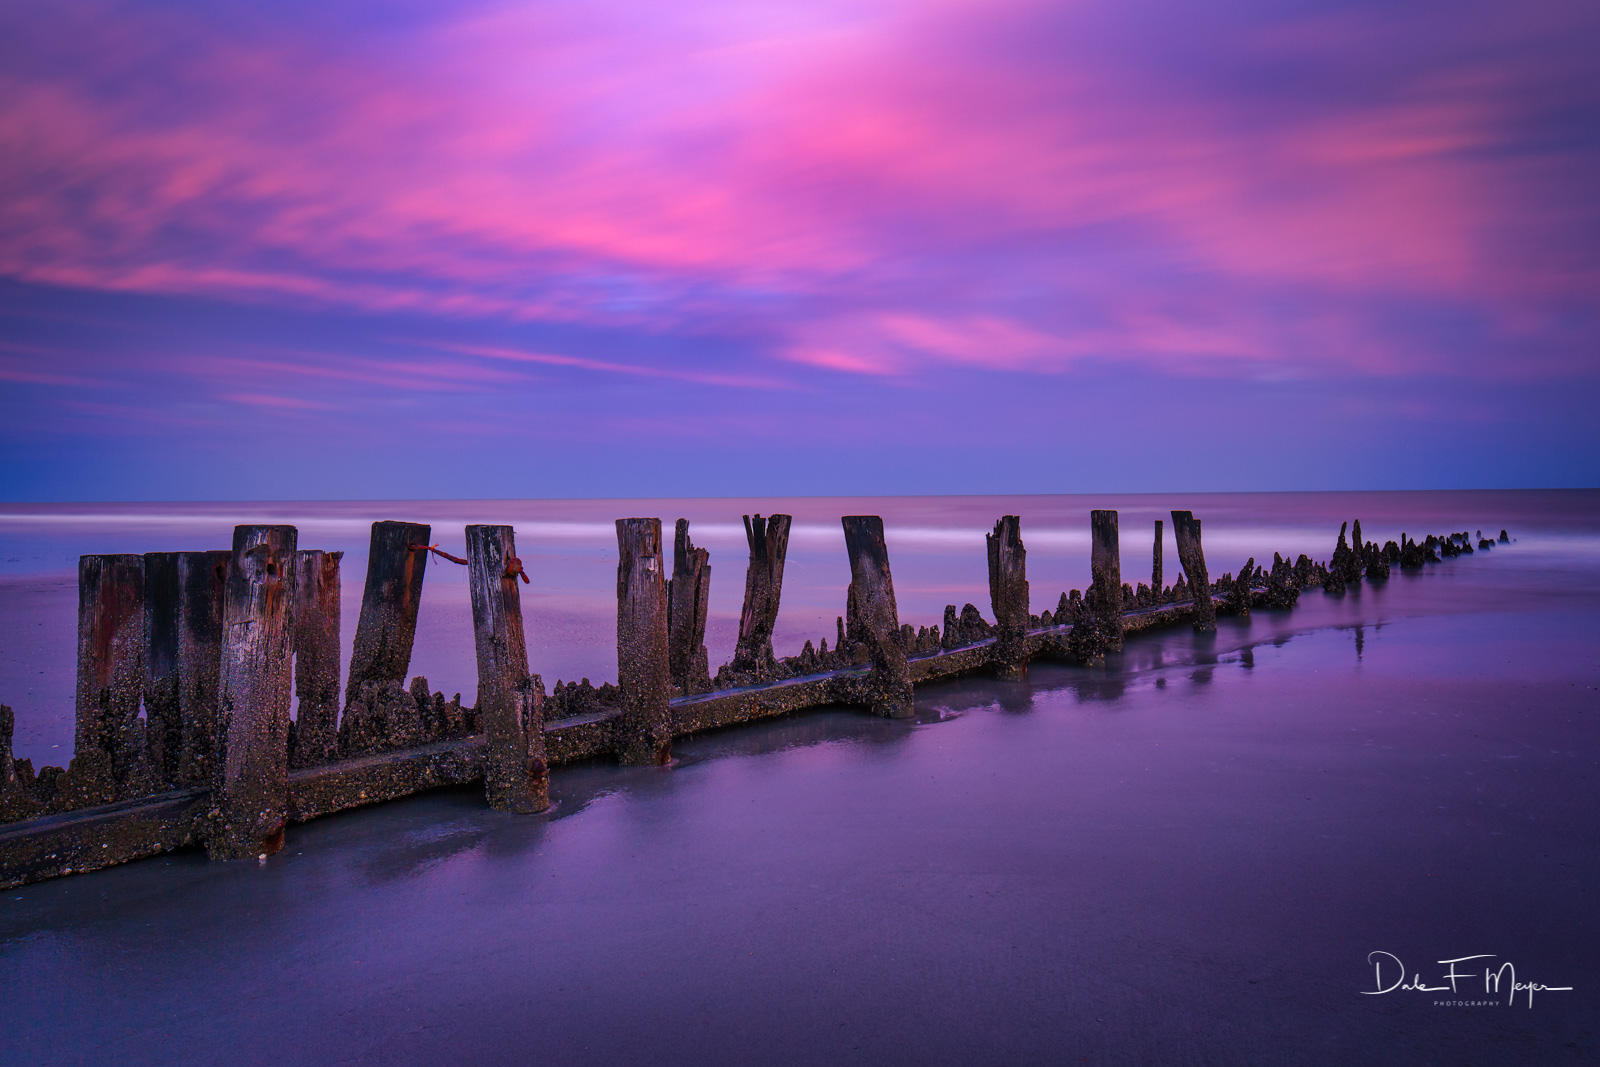 Low Tide, Folly Beach North Carolina with an old worn wood Jetty and sunset glow. Parts of this Jetty almost appear as coral...